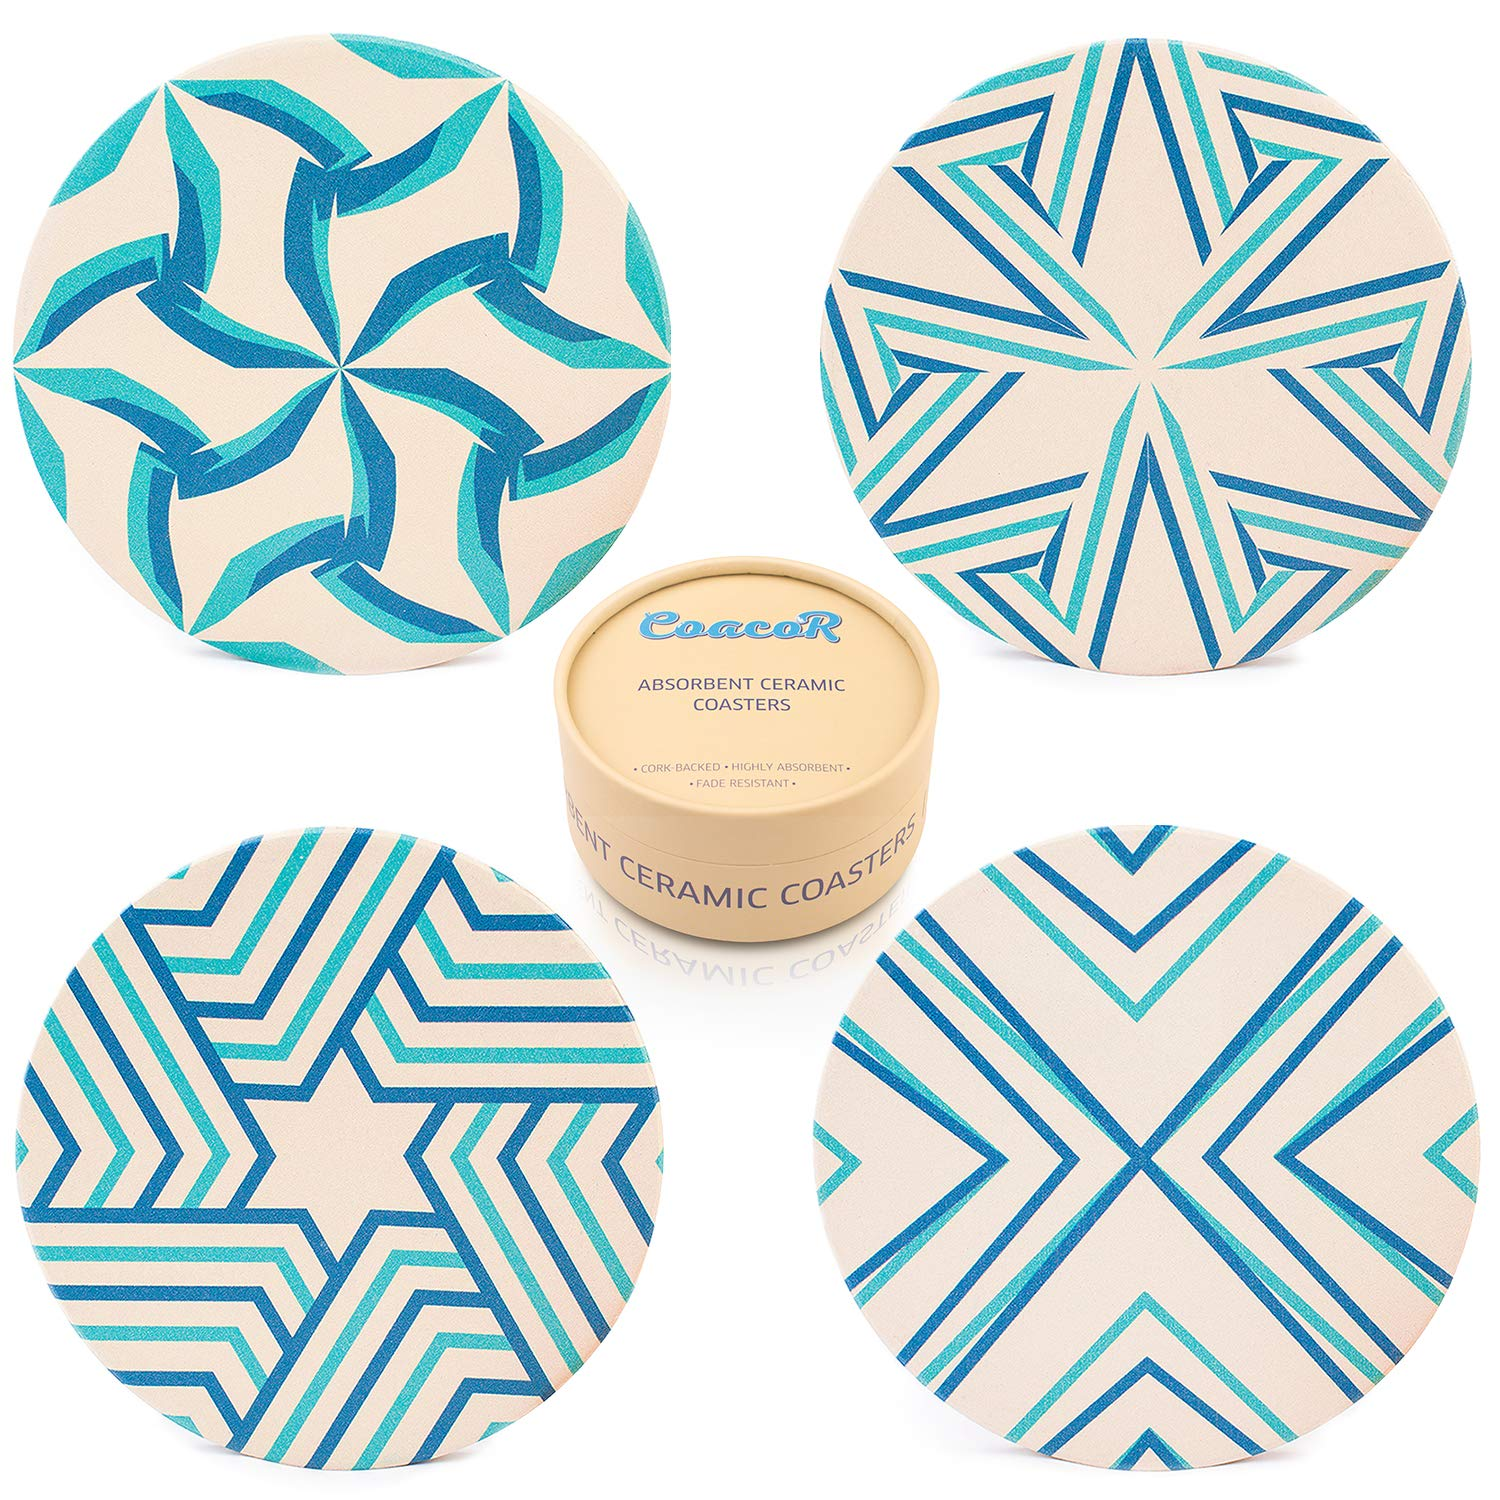 Coasters for Drinks Absorbent   Ceramic Stone   Cork Back   Set of 4   Large 4''   Modern Unique Designs   Turquoise - Blue Colors   Handcrafted Box  